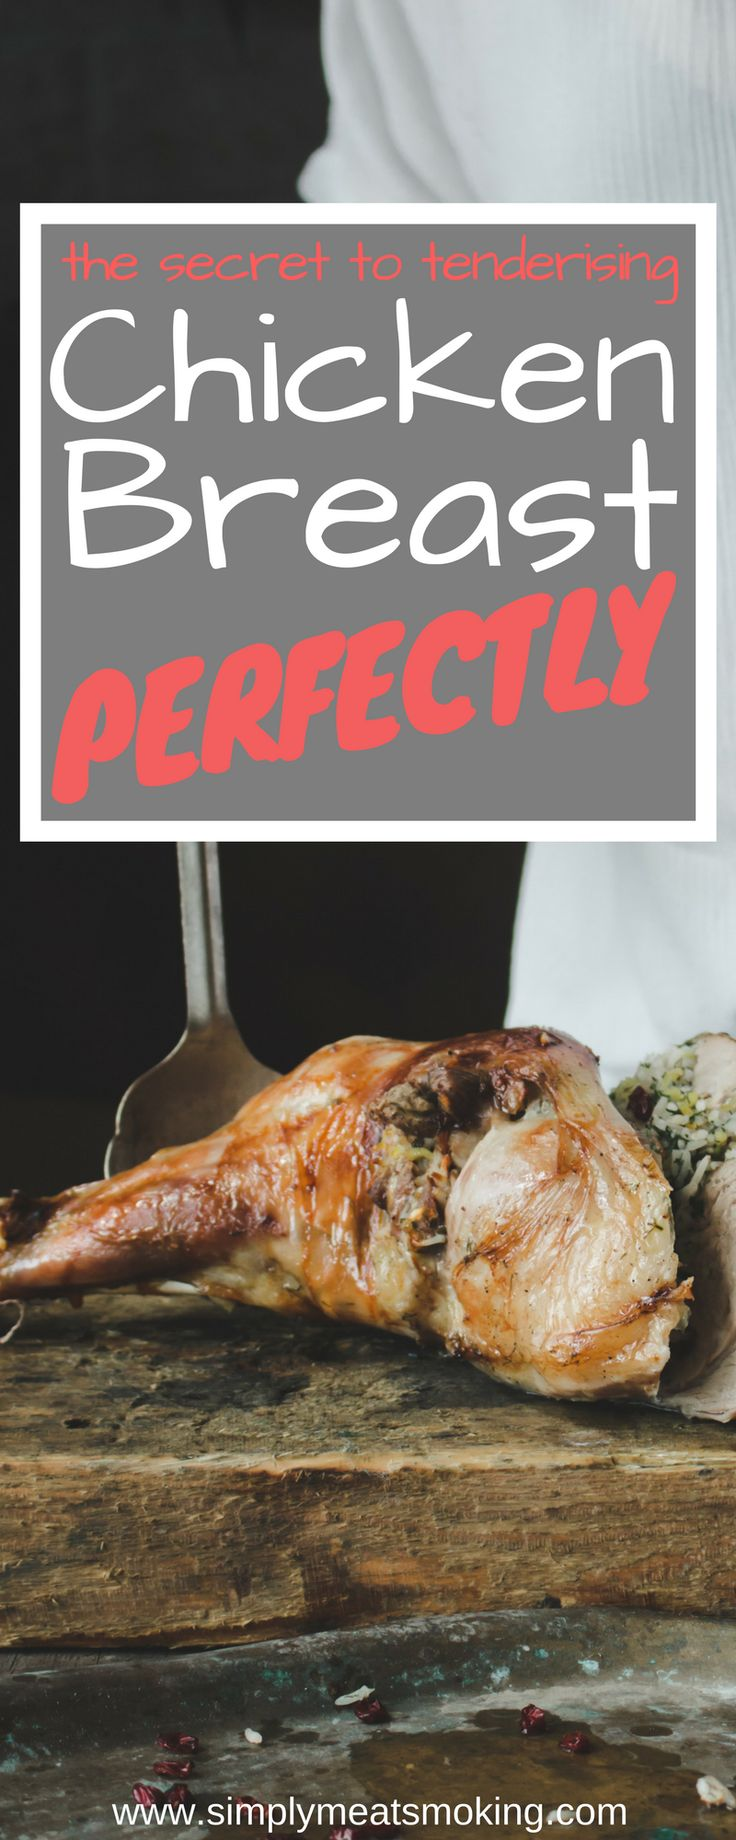 Nothing beats a nice tender &  juicy chicken breast. Learn the tricks of the trade for perfection every time!  | Chicken Recipe | BBQ Recipes | Gas Barbecue Recipes | Gas Smoker Recipes | Gas Grill Recipes | Best Gas Grill Recipes | Best Gas Smoker Recipe http://grillbestidea.com/